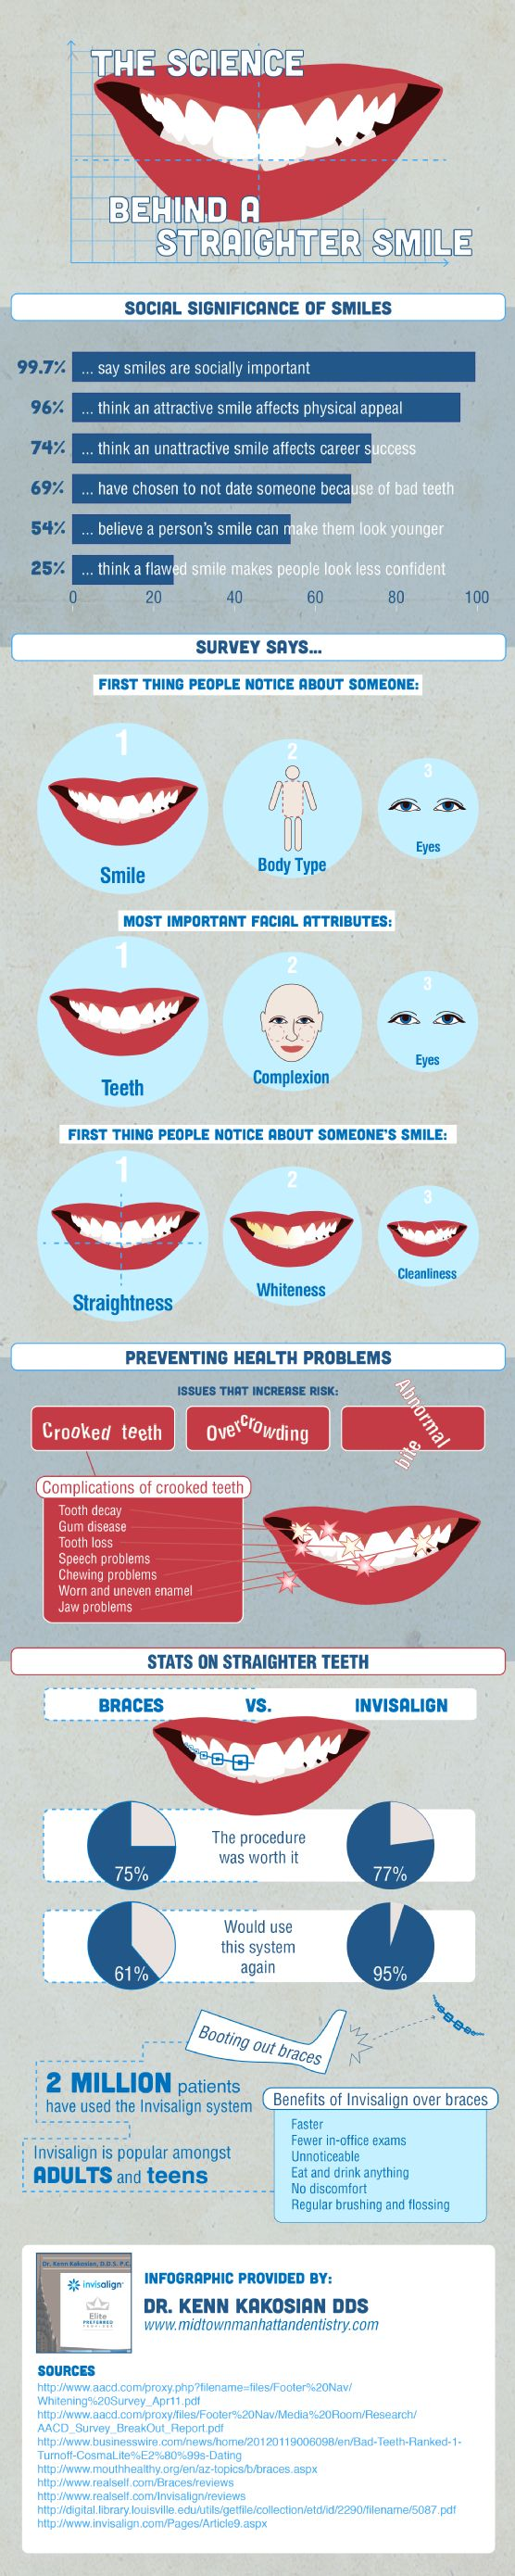 Metal Braces Aren't The Only Option To Consider When Looking To Improve  Crooked Teeth